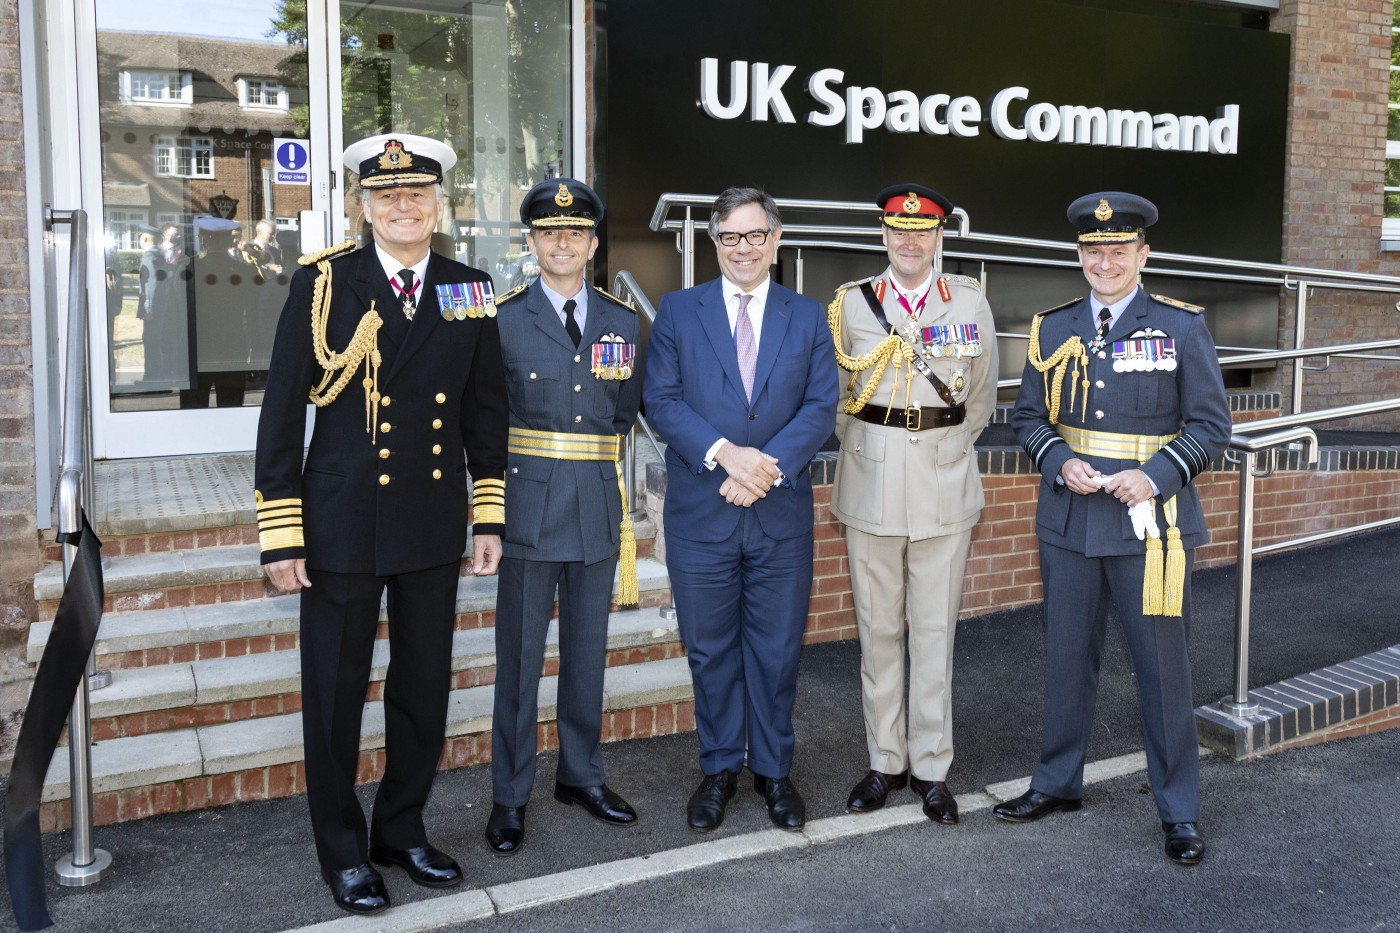 (Left to Right) Vice-Chief of the Defence Staff Admiral Sir Tim Fraser, Air Vice Marshall Paul Godfrey OBE, Minister for Defence Procurement Jeremy Quin, Commander UK Strategic Command General Sir Patrick Sanders, and Air Chief Marshal Sir Mike Wigston outside the headquarters of UK Space Command at RAF High Wycombe